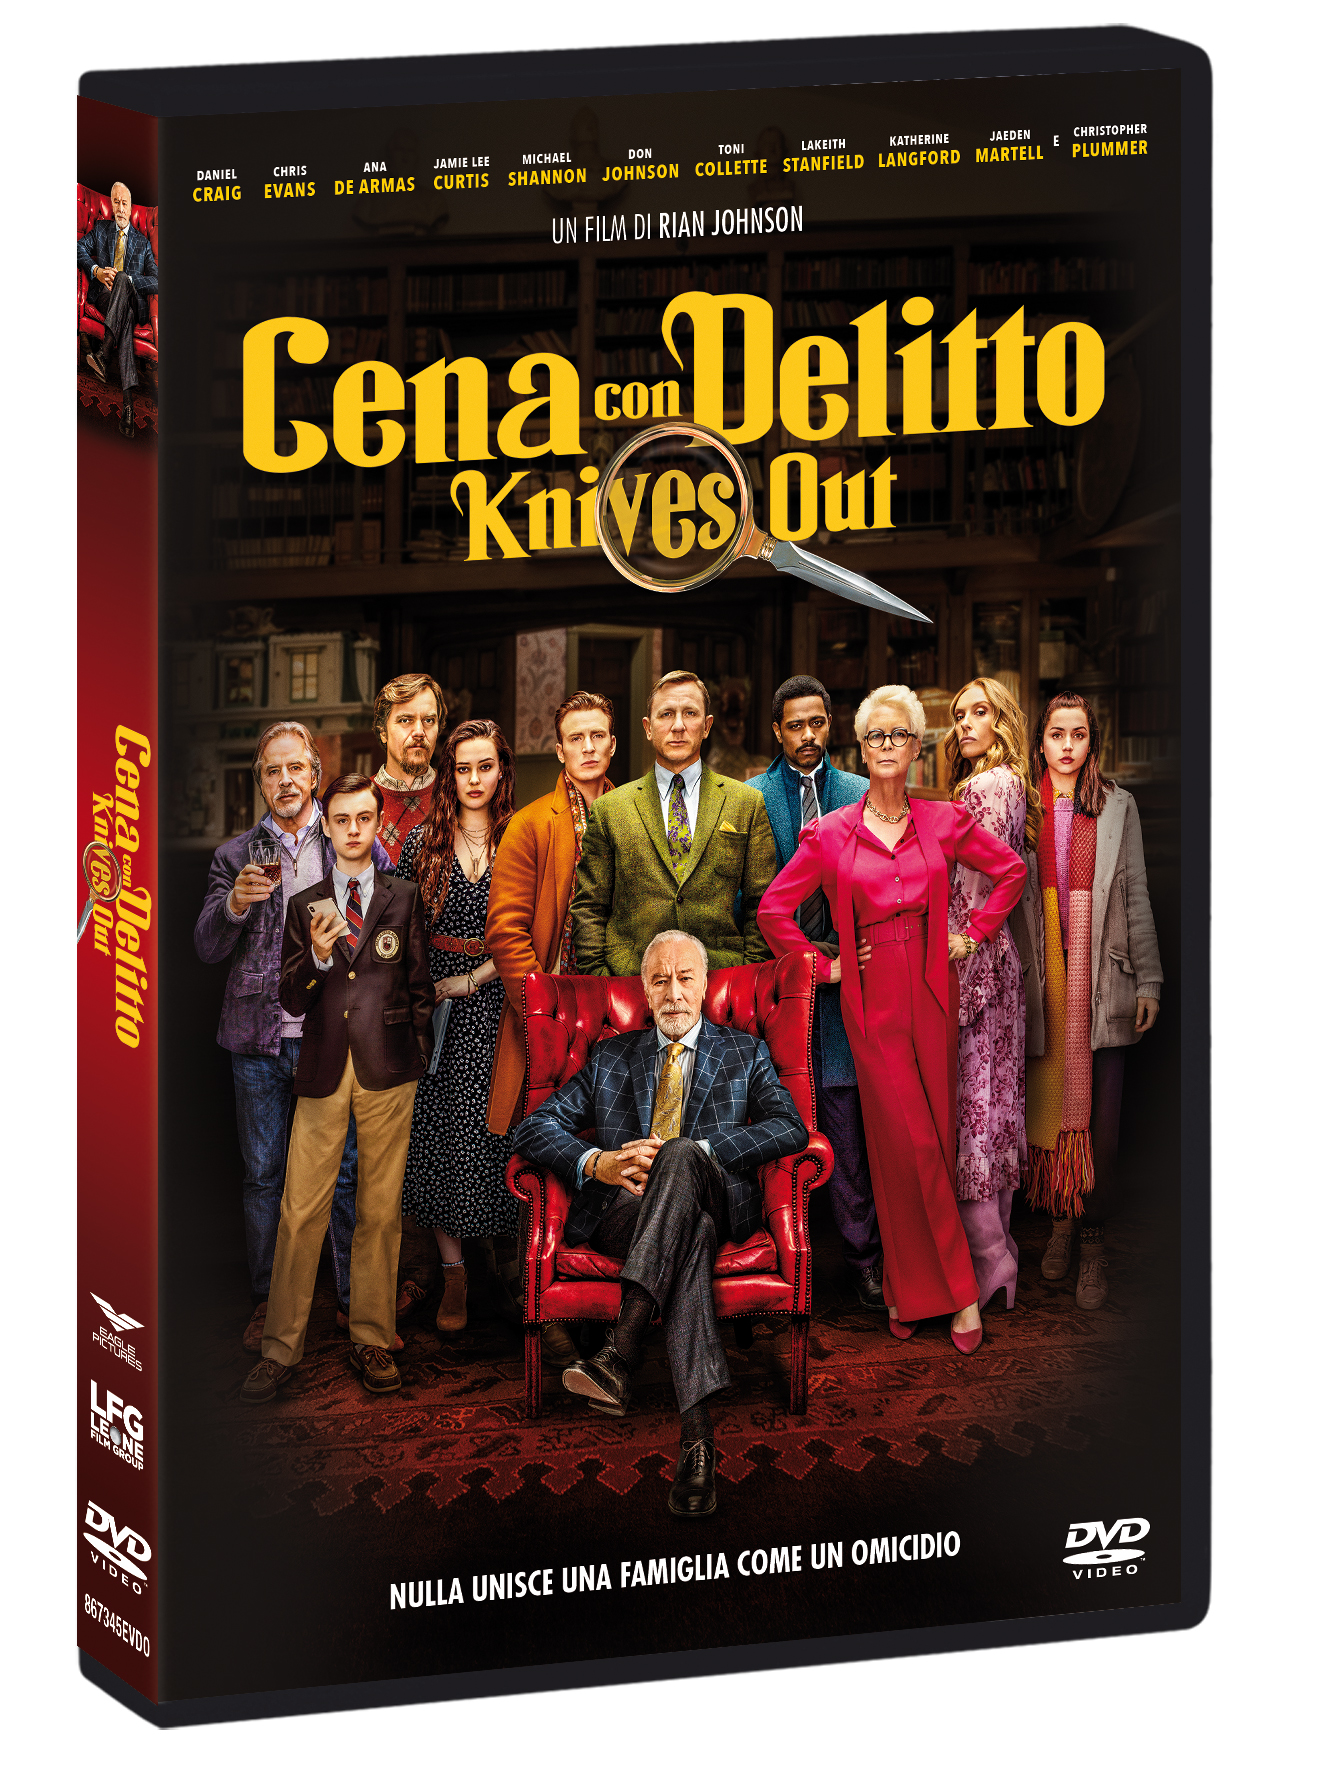 Cena_con_delitto_SELL_HI_DVD